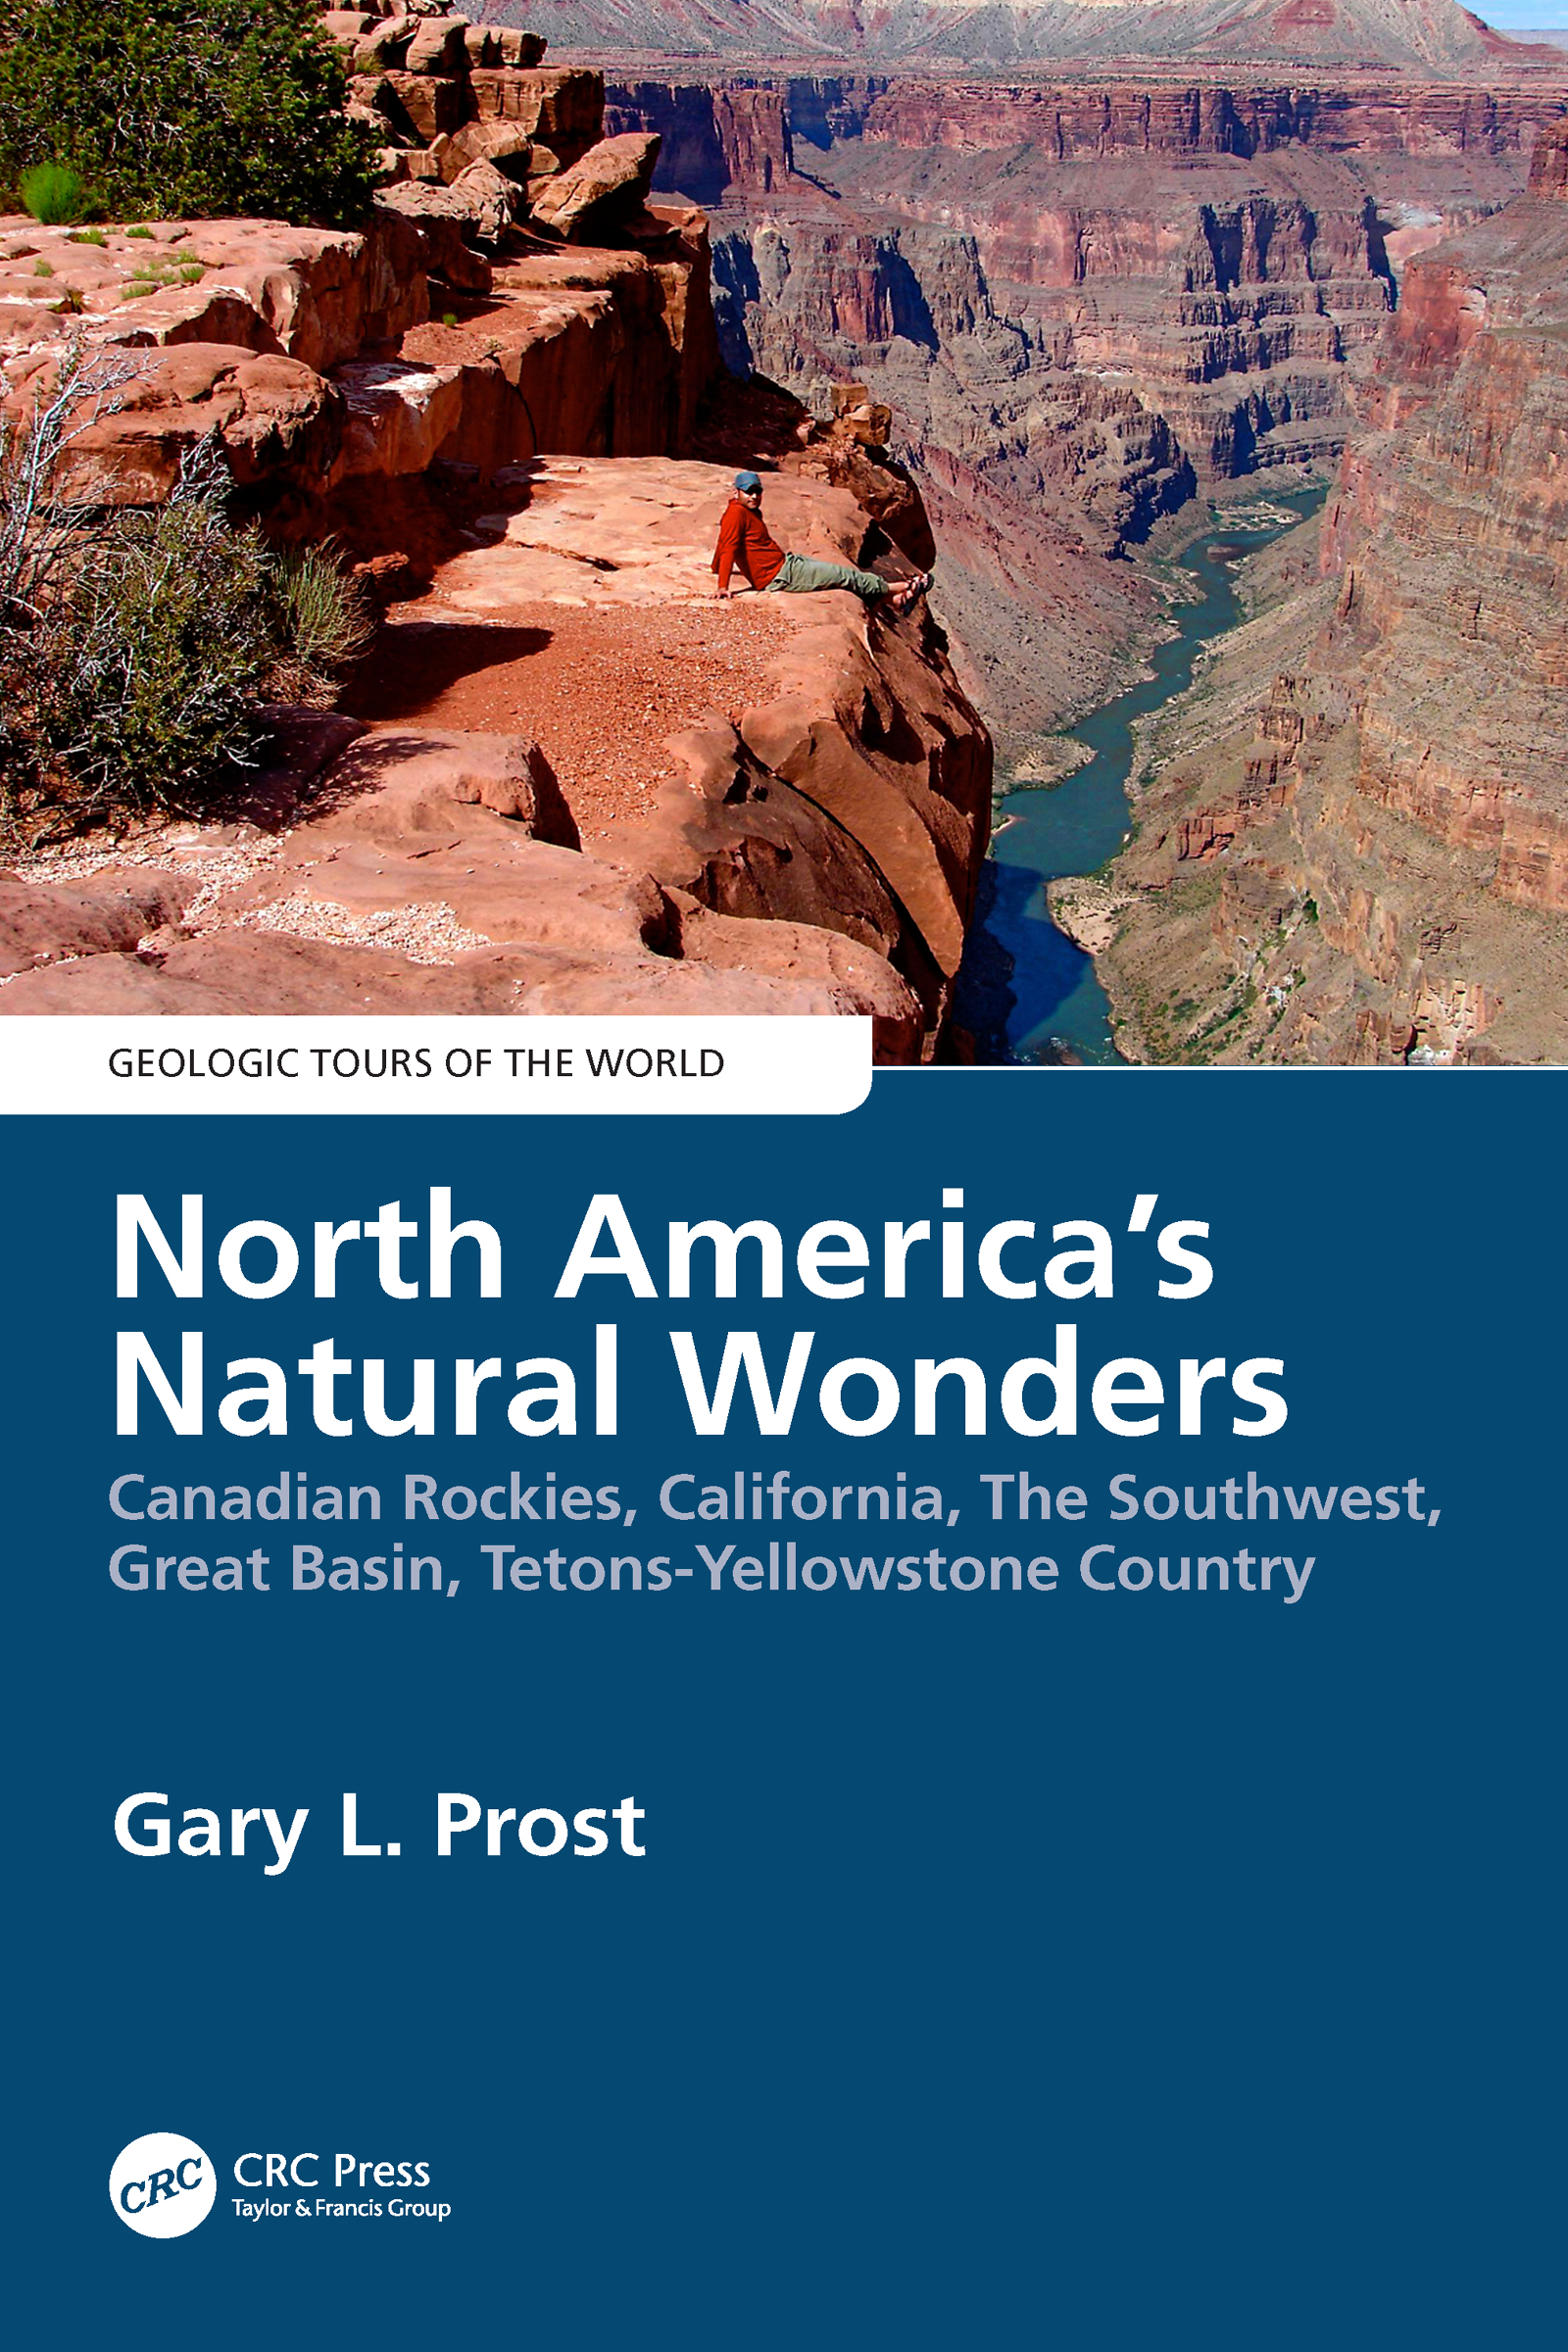 North America's Natural Wonders: Canadian Rockies, The Southwest, Great Basin, Tetons-Yellowstone Country book cover